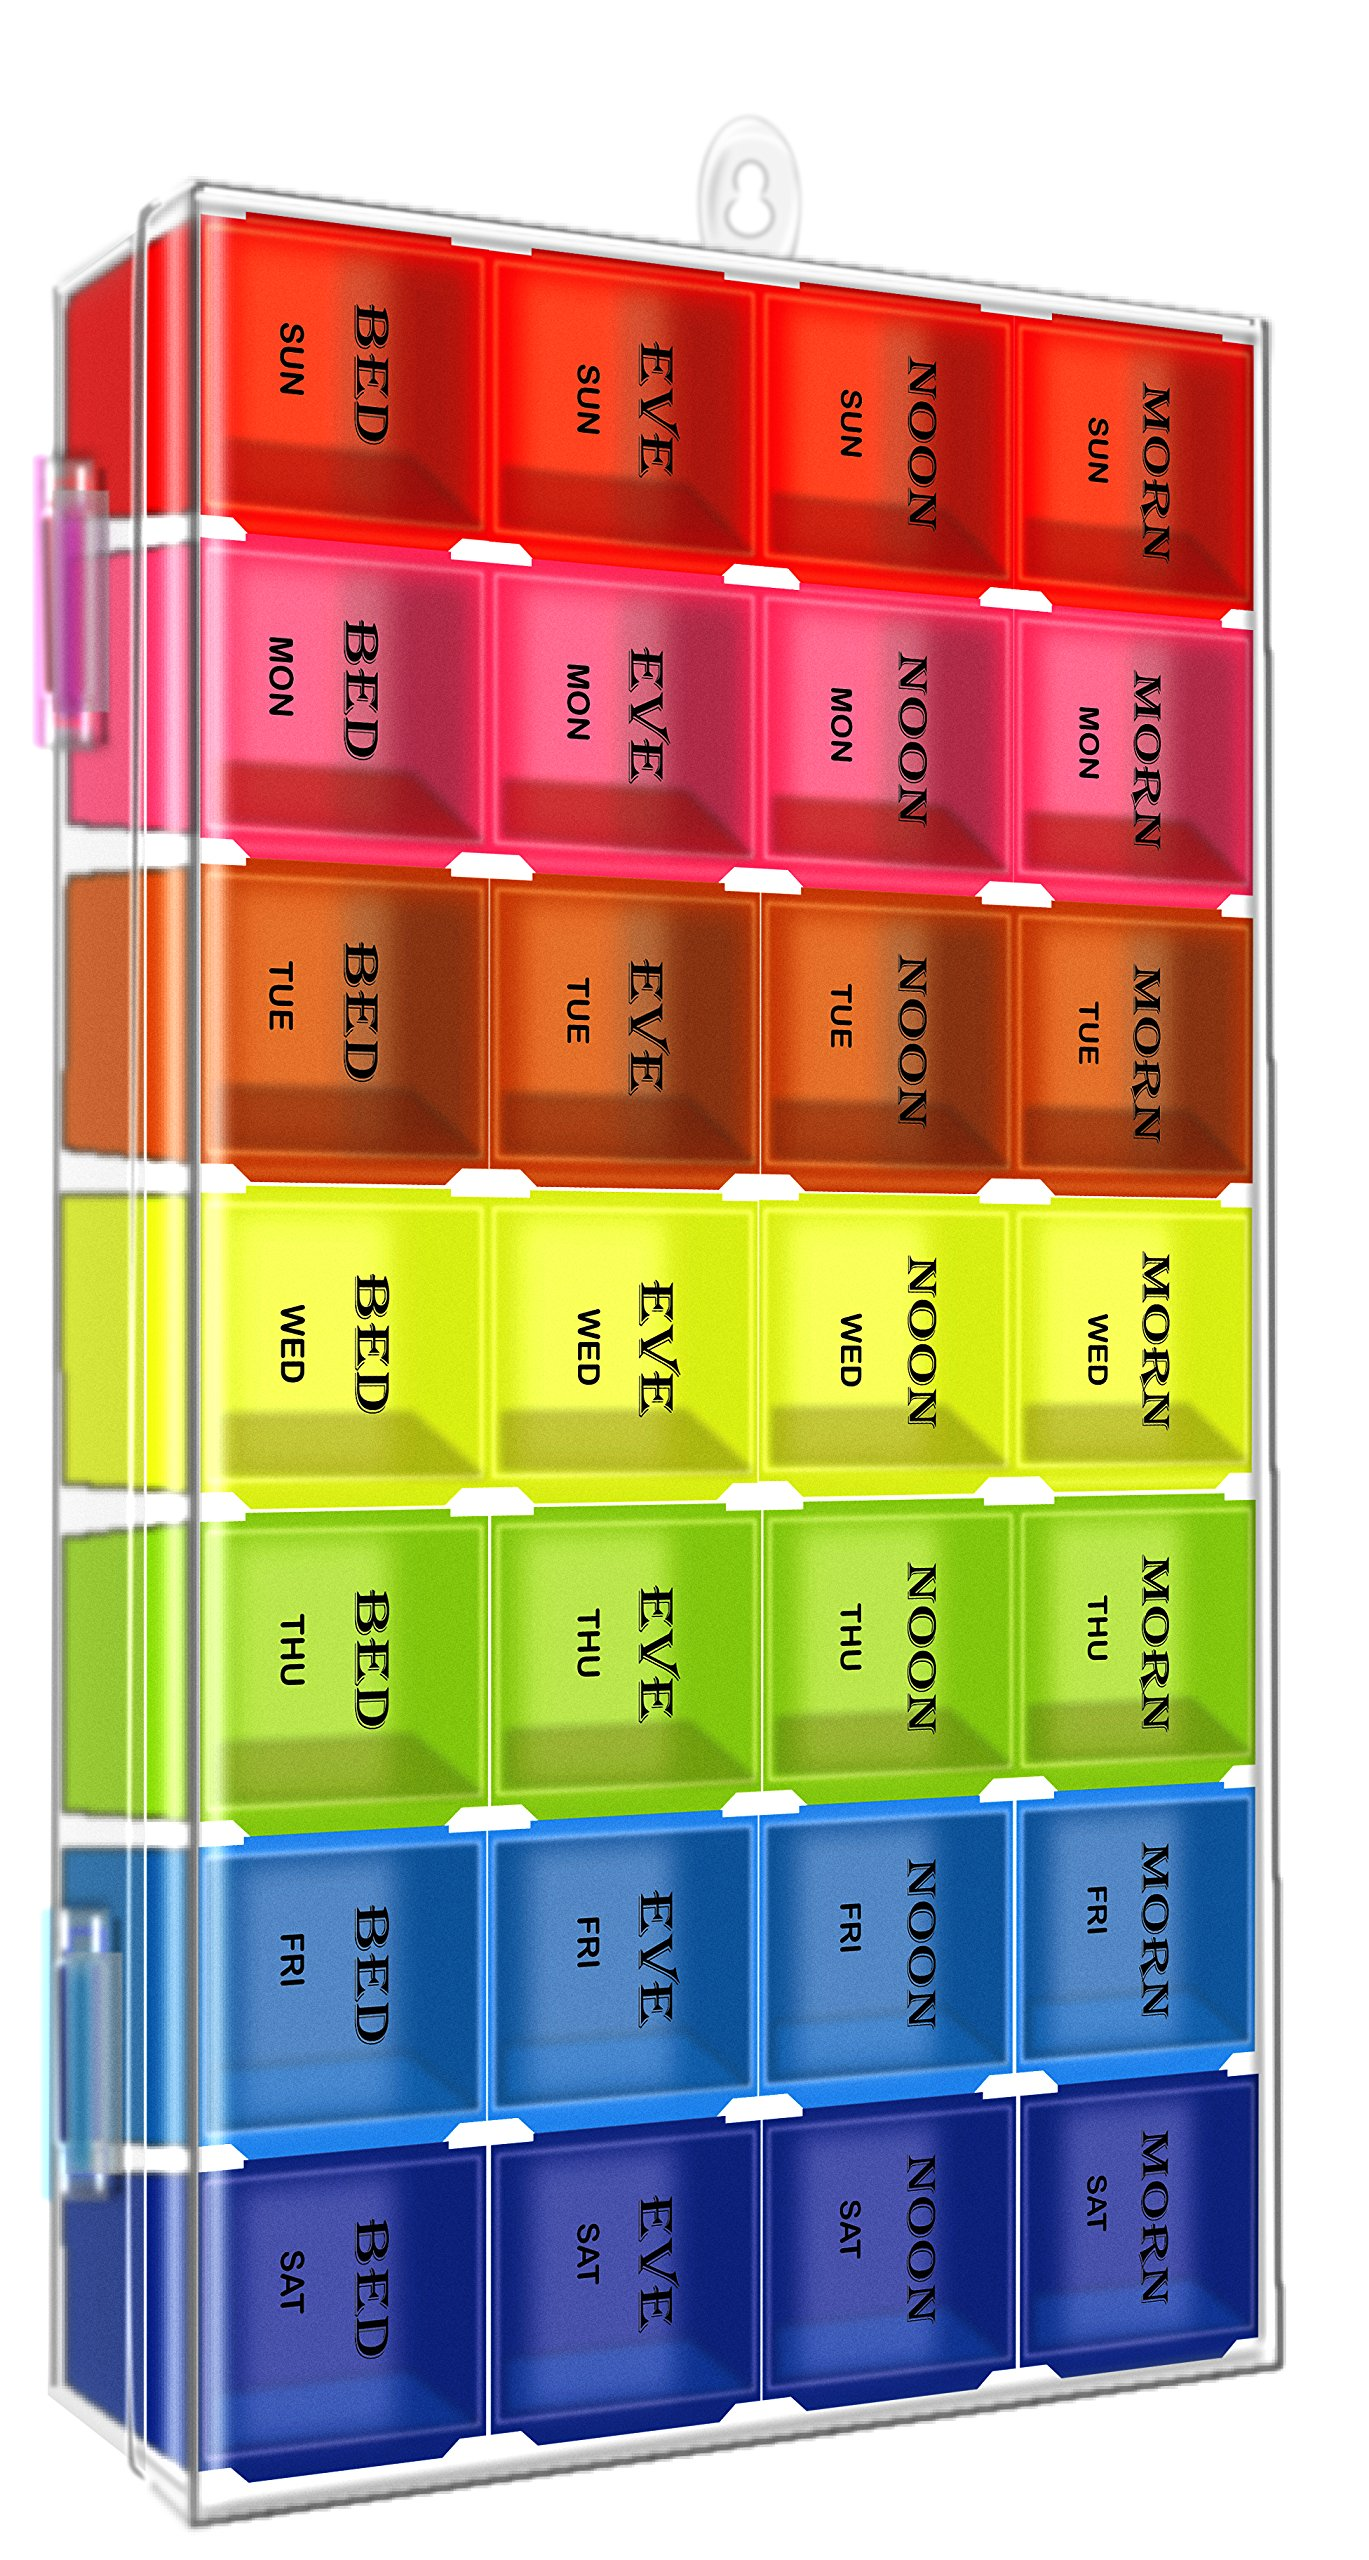 7 Days Pill Organizer Tablet Box Weekly Medication Case Daily AM Morning Noon PM Night Backup Container Compartments Detachable Dispenser (28 Compartments)